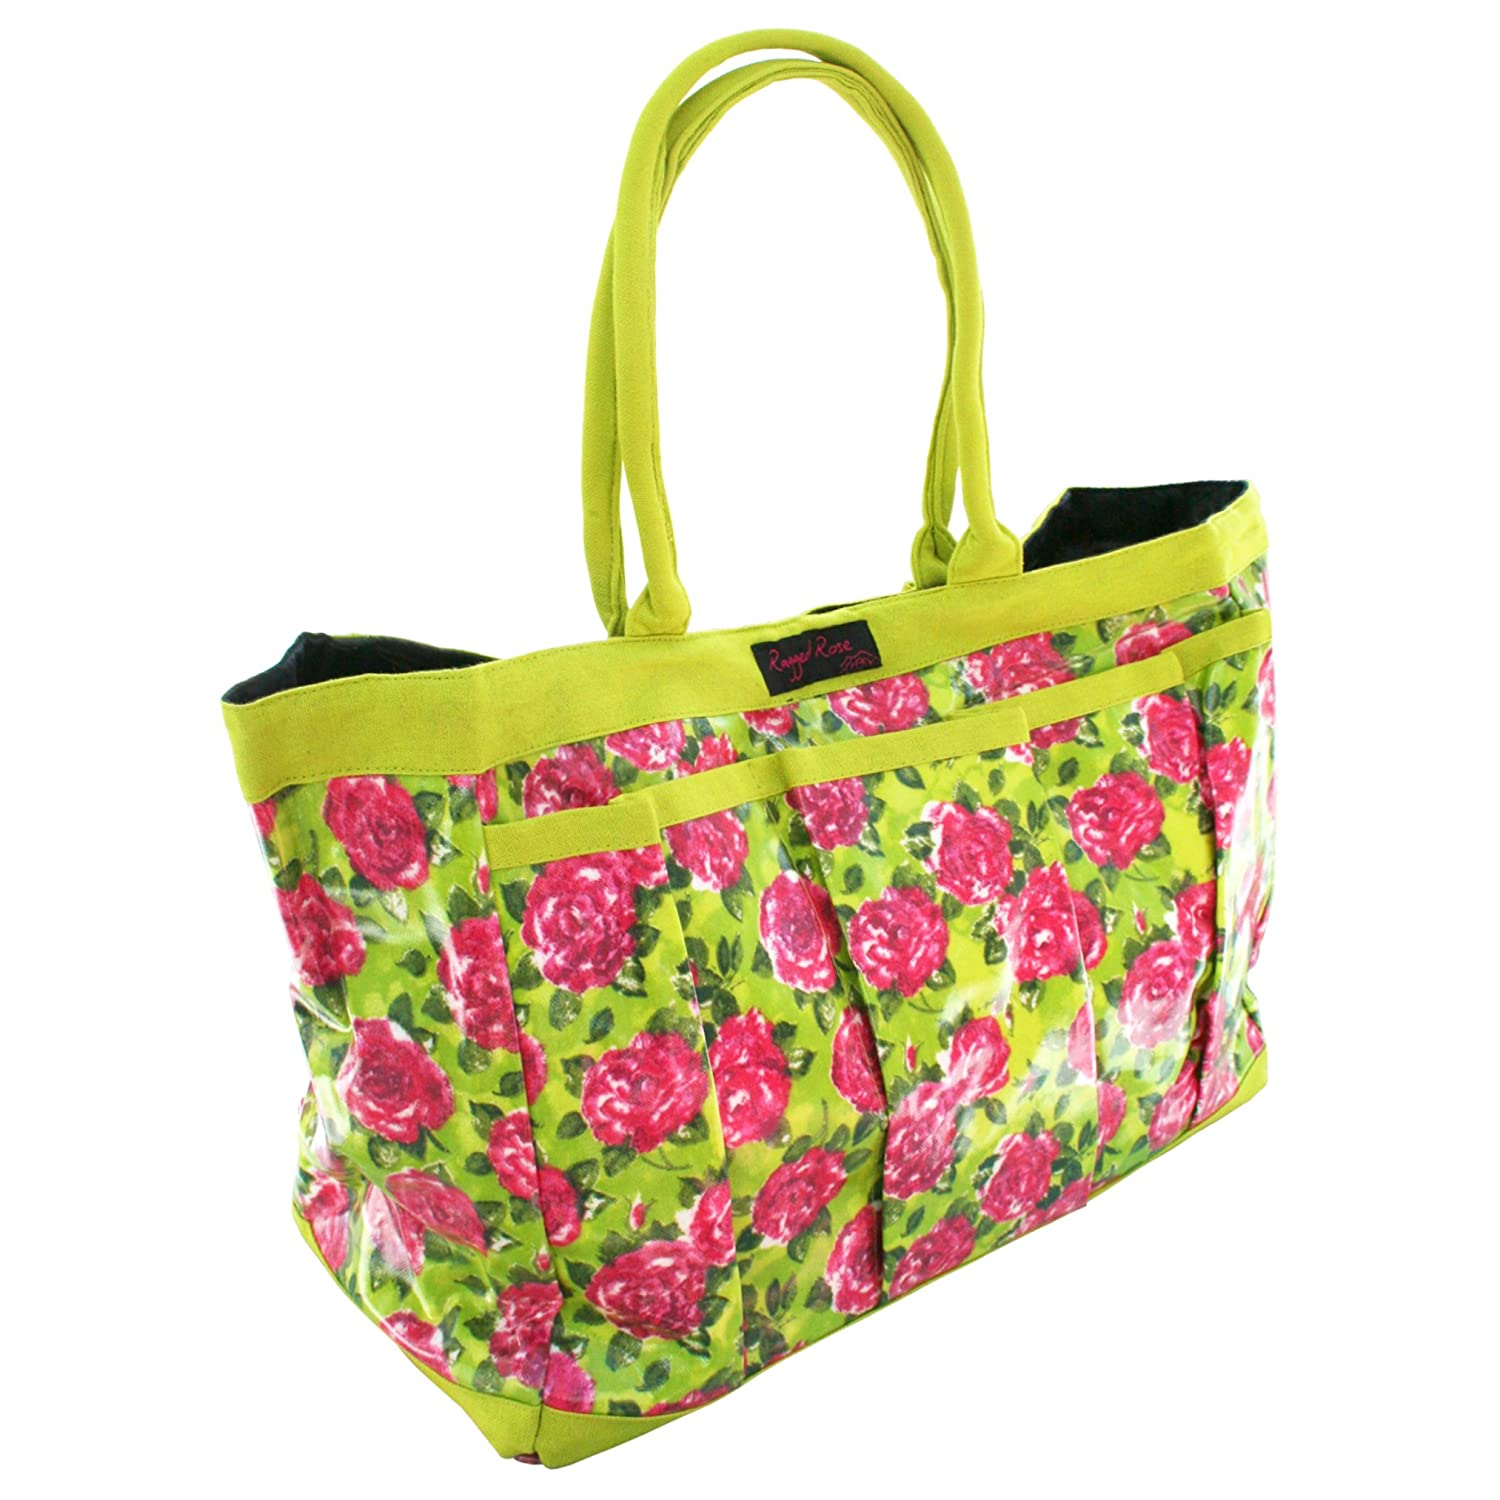 Ragged Rose PVC Ladies Garden Tool Bag with Lime and Pink Rose Print - Green